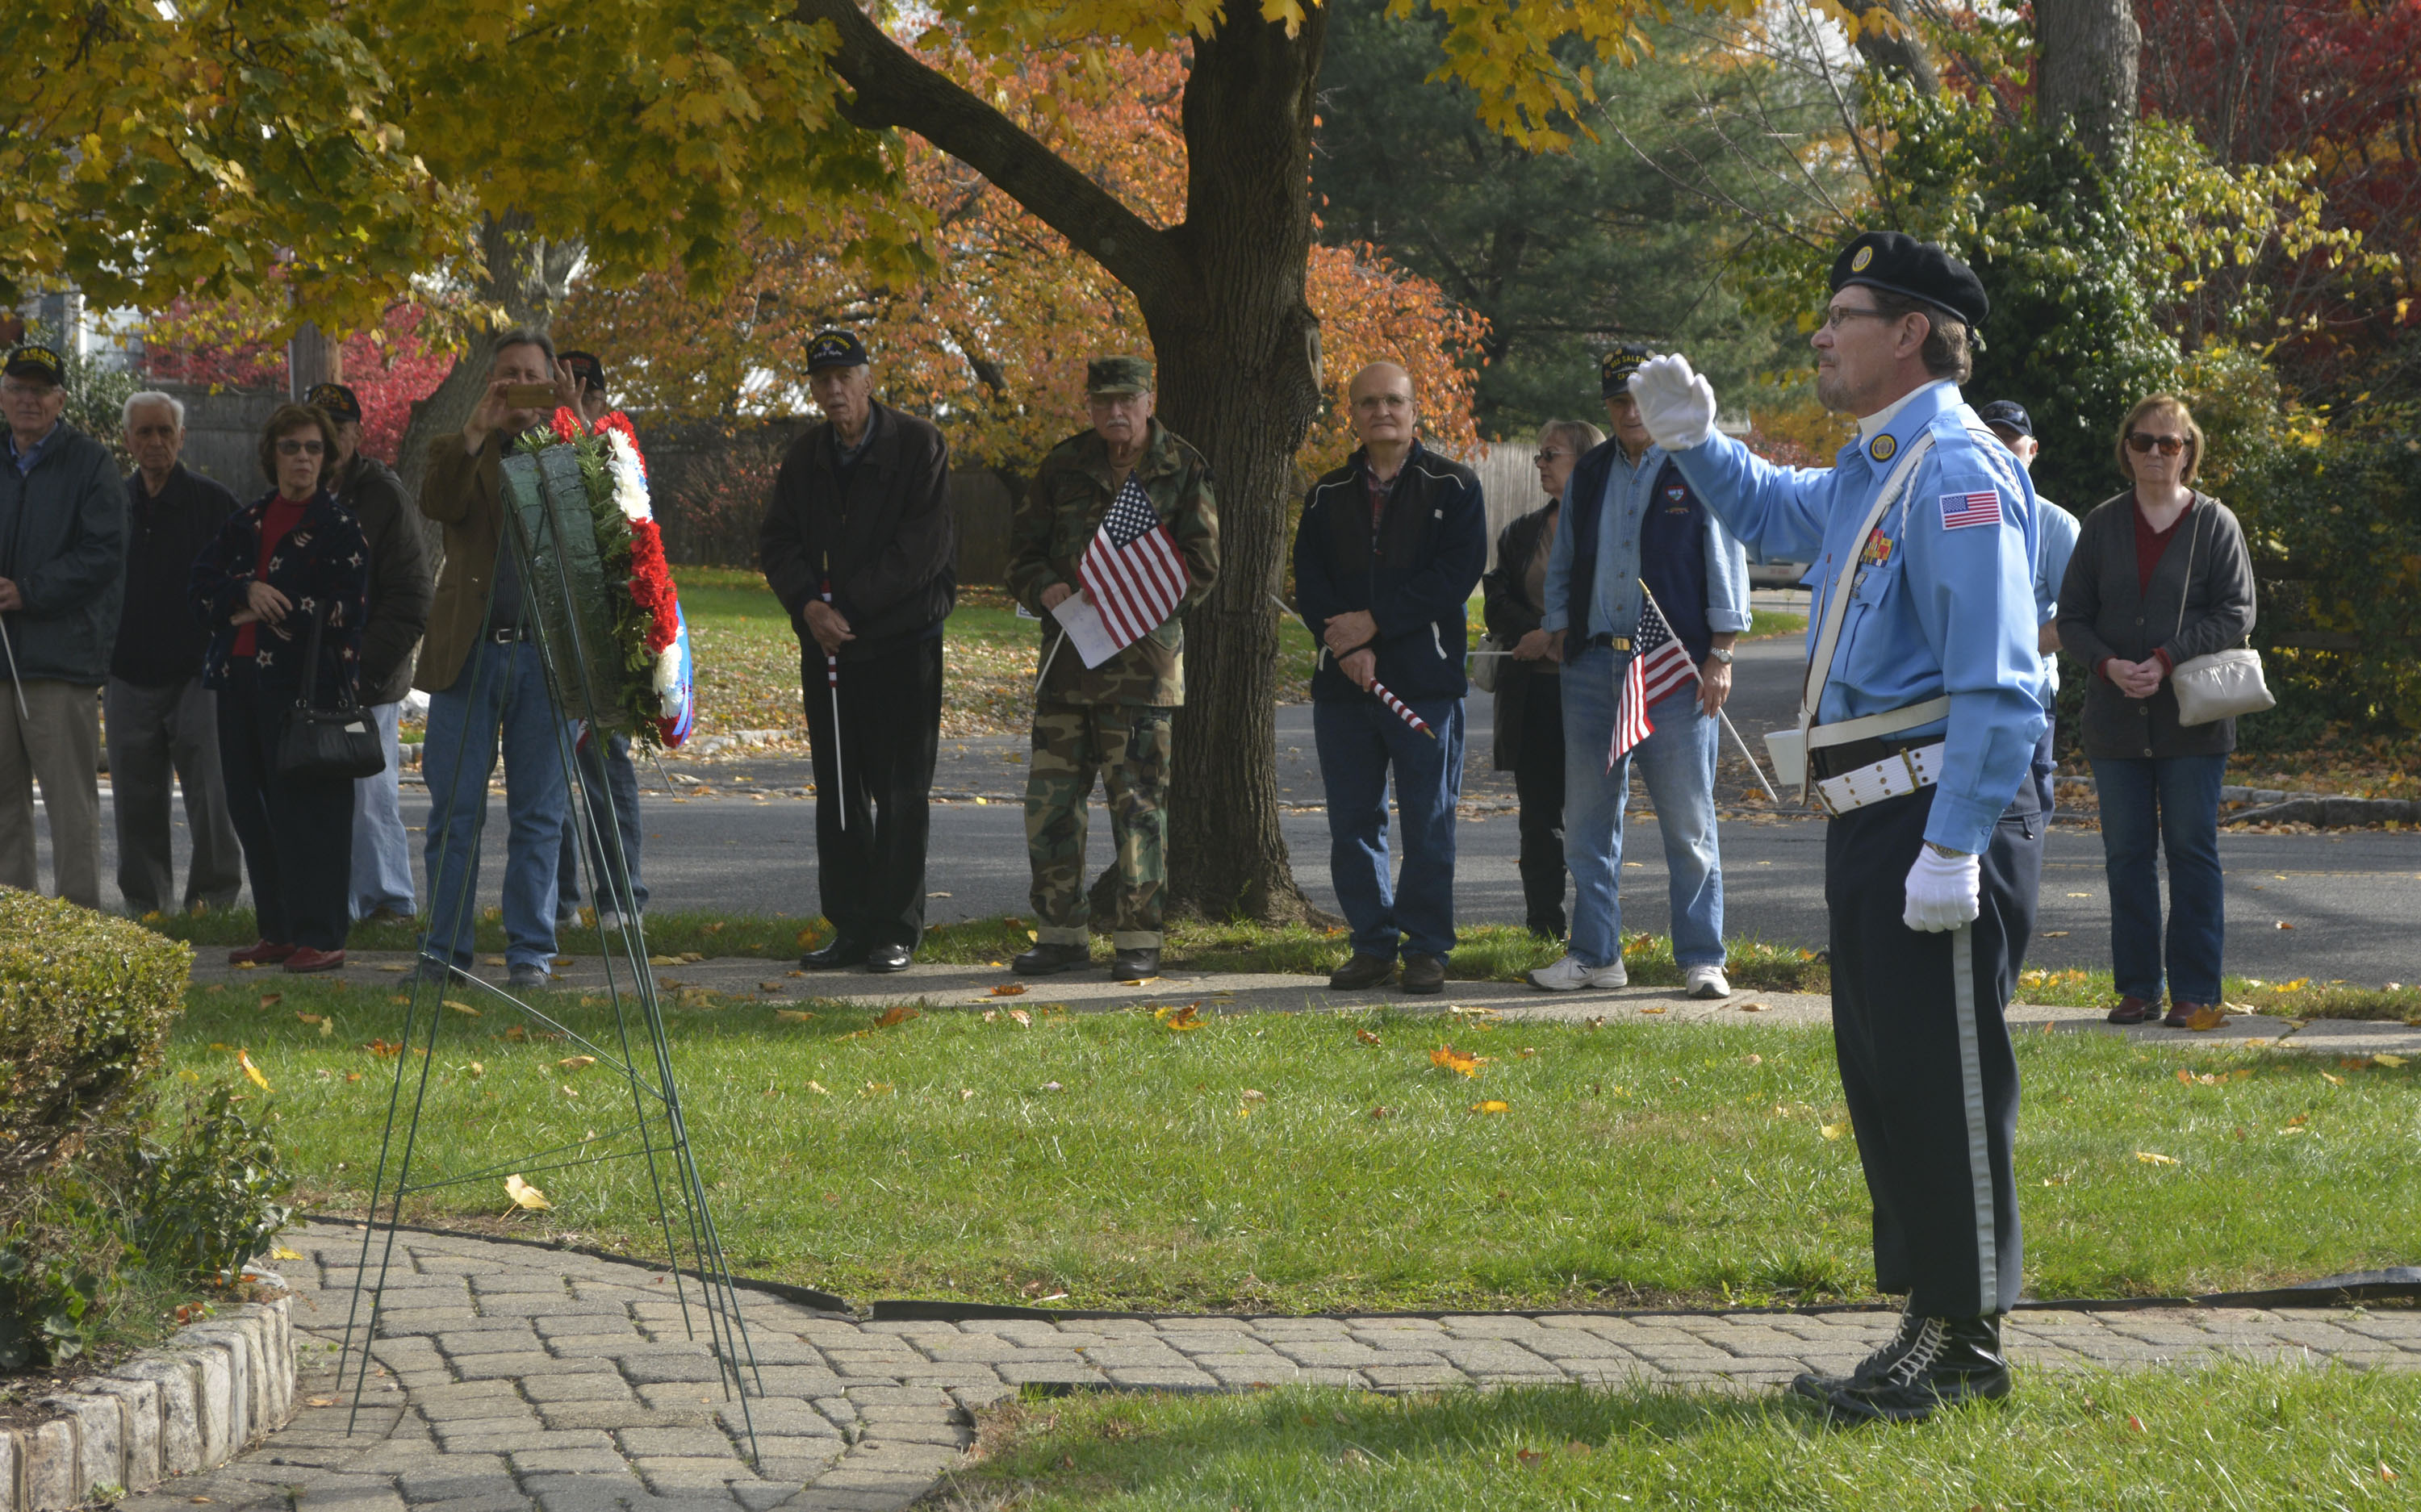 b48c118b5ed1d47f3c01_Scotch_Plains-Fanwood_VFW_Post_10122_commander_Earl_Pavlik_of_Scotch_Plains_-_Vietnam_War_army_vet_-_delivers_a_salute_after_placing_a_wreath_at_the_memorial_in_front_of_the_Fanwood_Memorial_Library.jpg